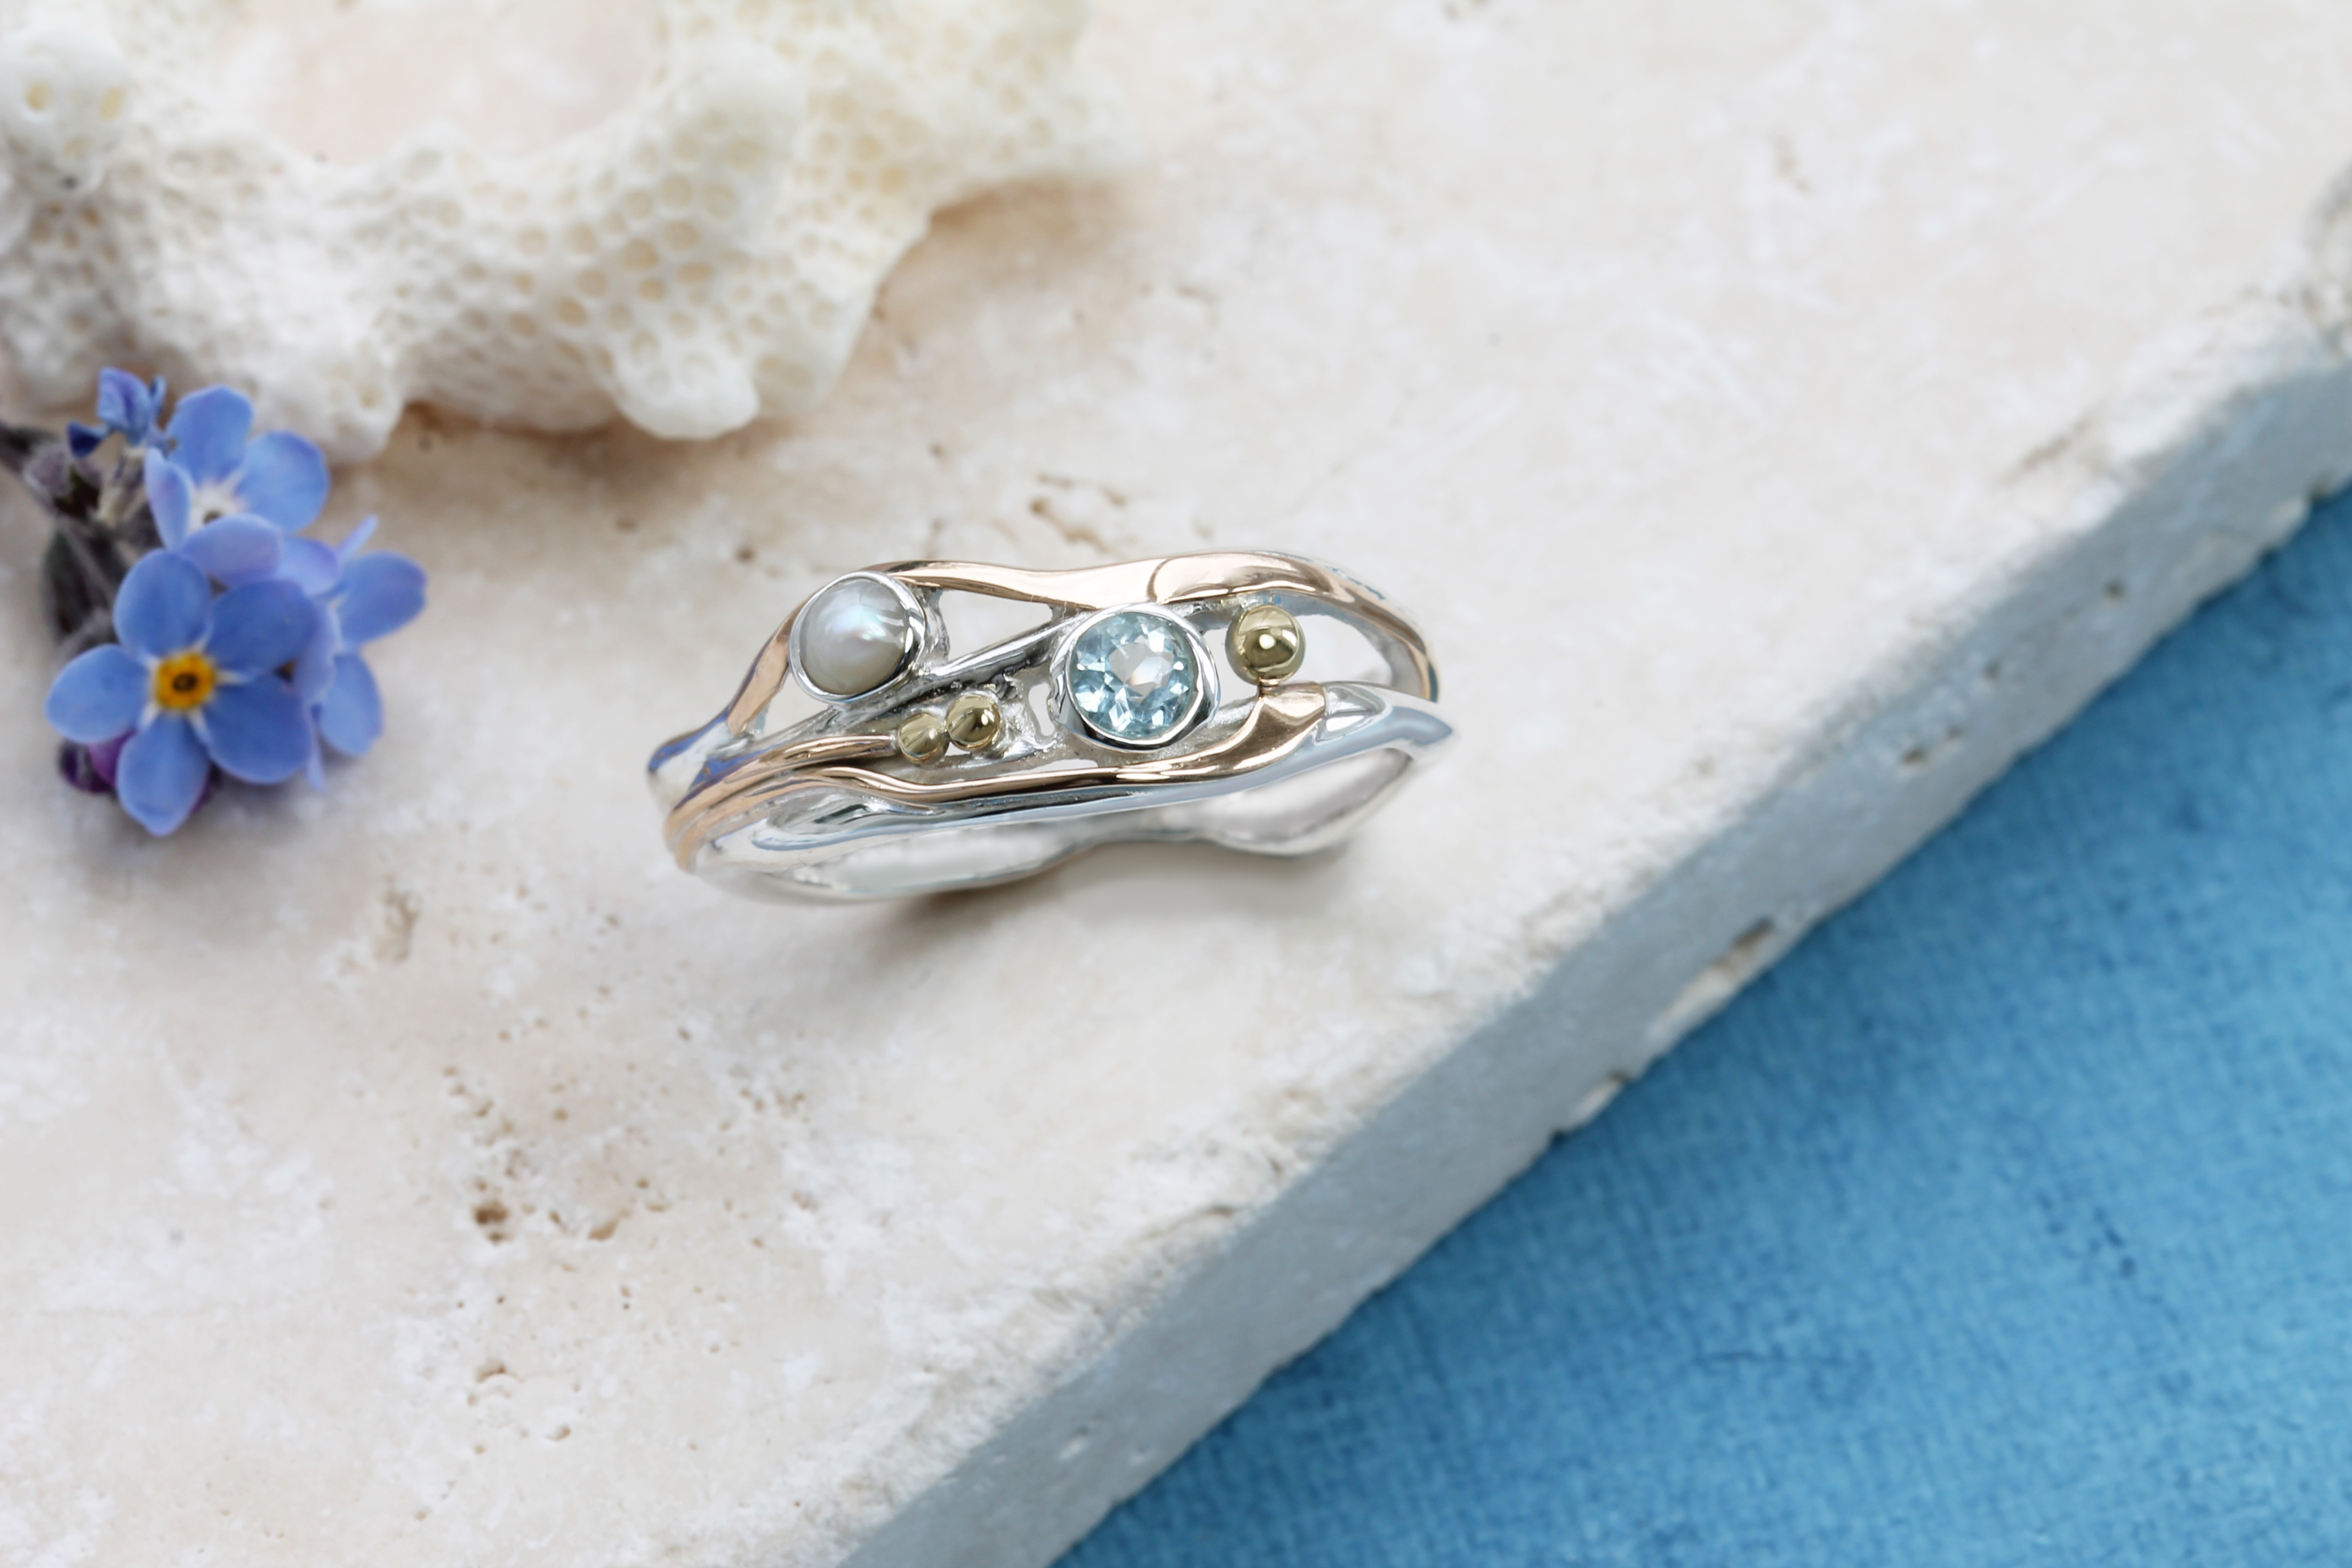 Blue Topaz & Pearl Ring in Sterling Silver with Gold details